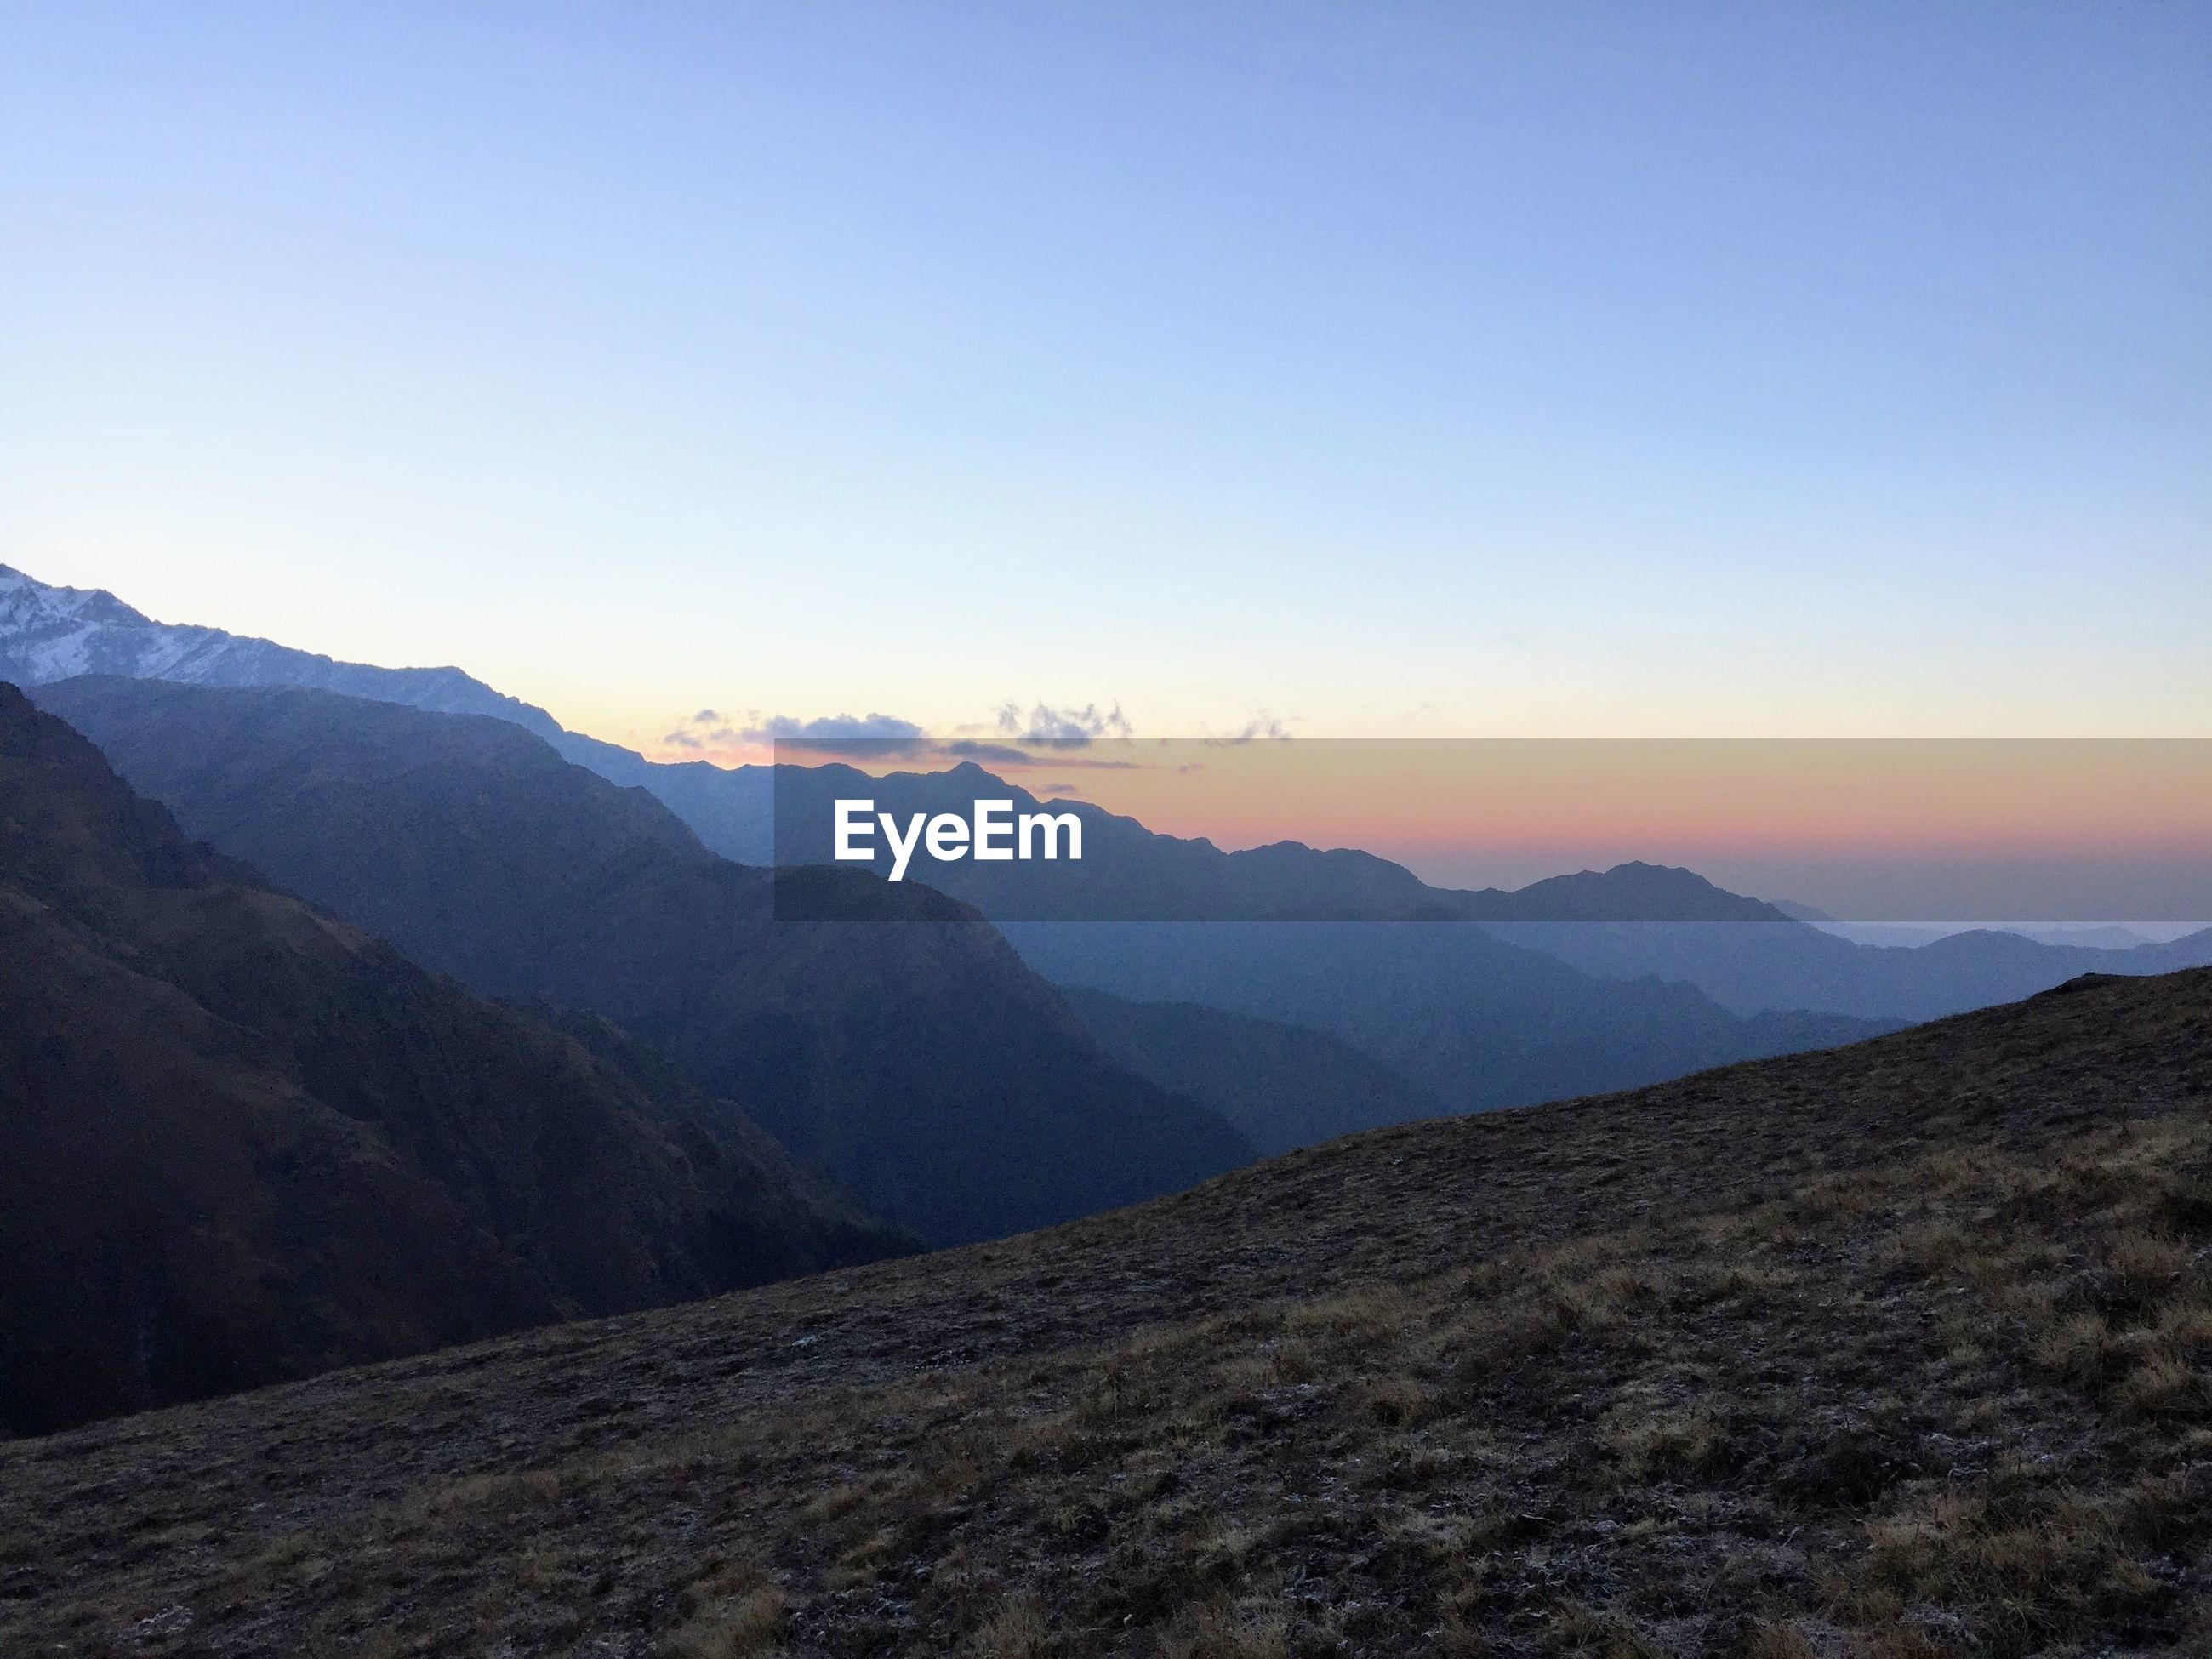 SCENIC VIEW OF LANDSCAPE AGAINST CLEAR SKY DURING SUNSET